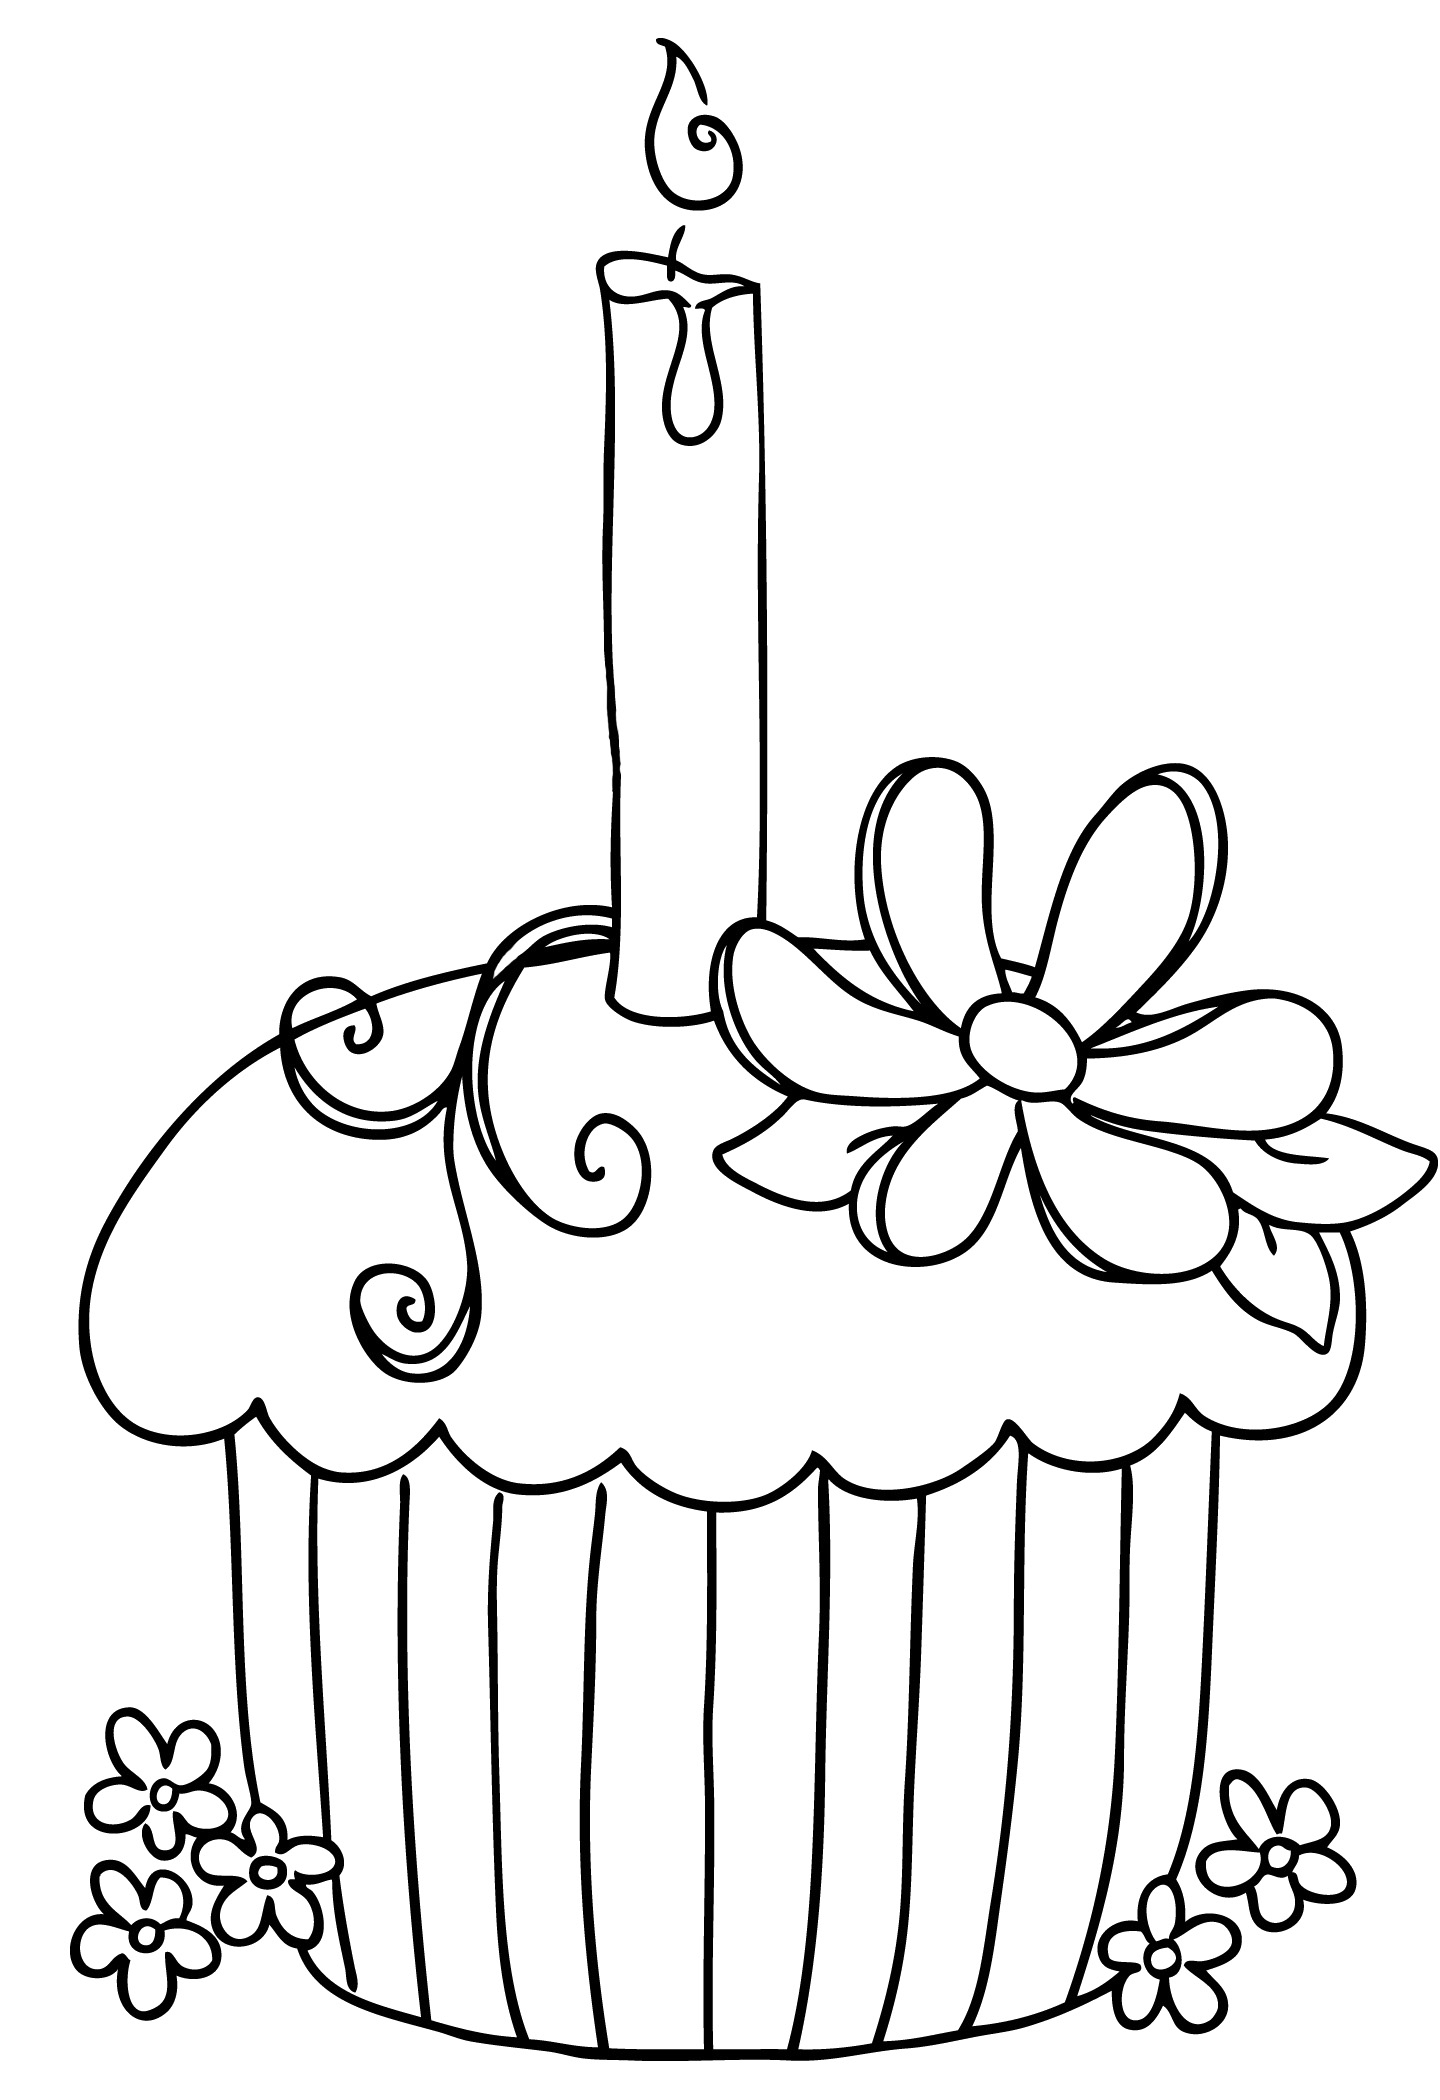 Birthday black and white birt - Birthday Clipart Black And White